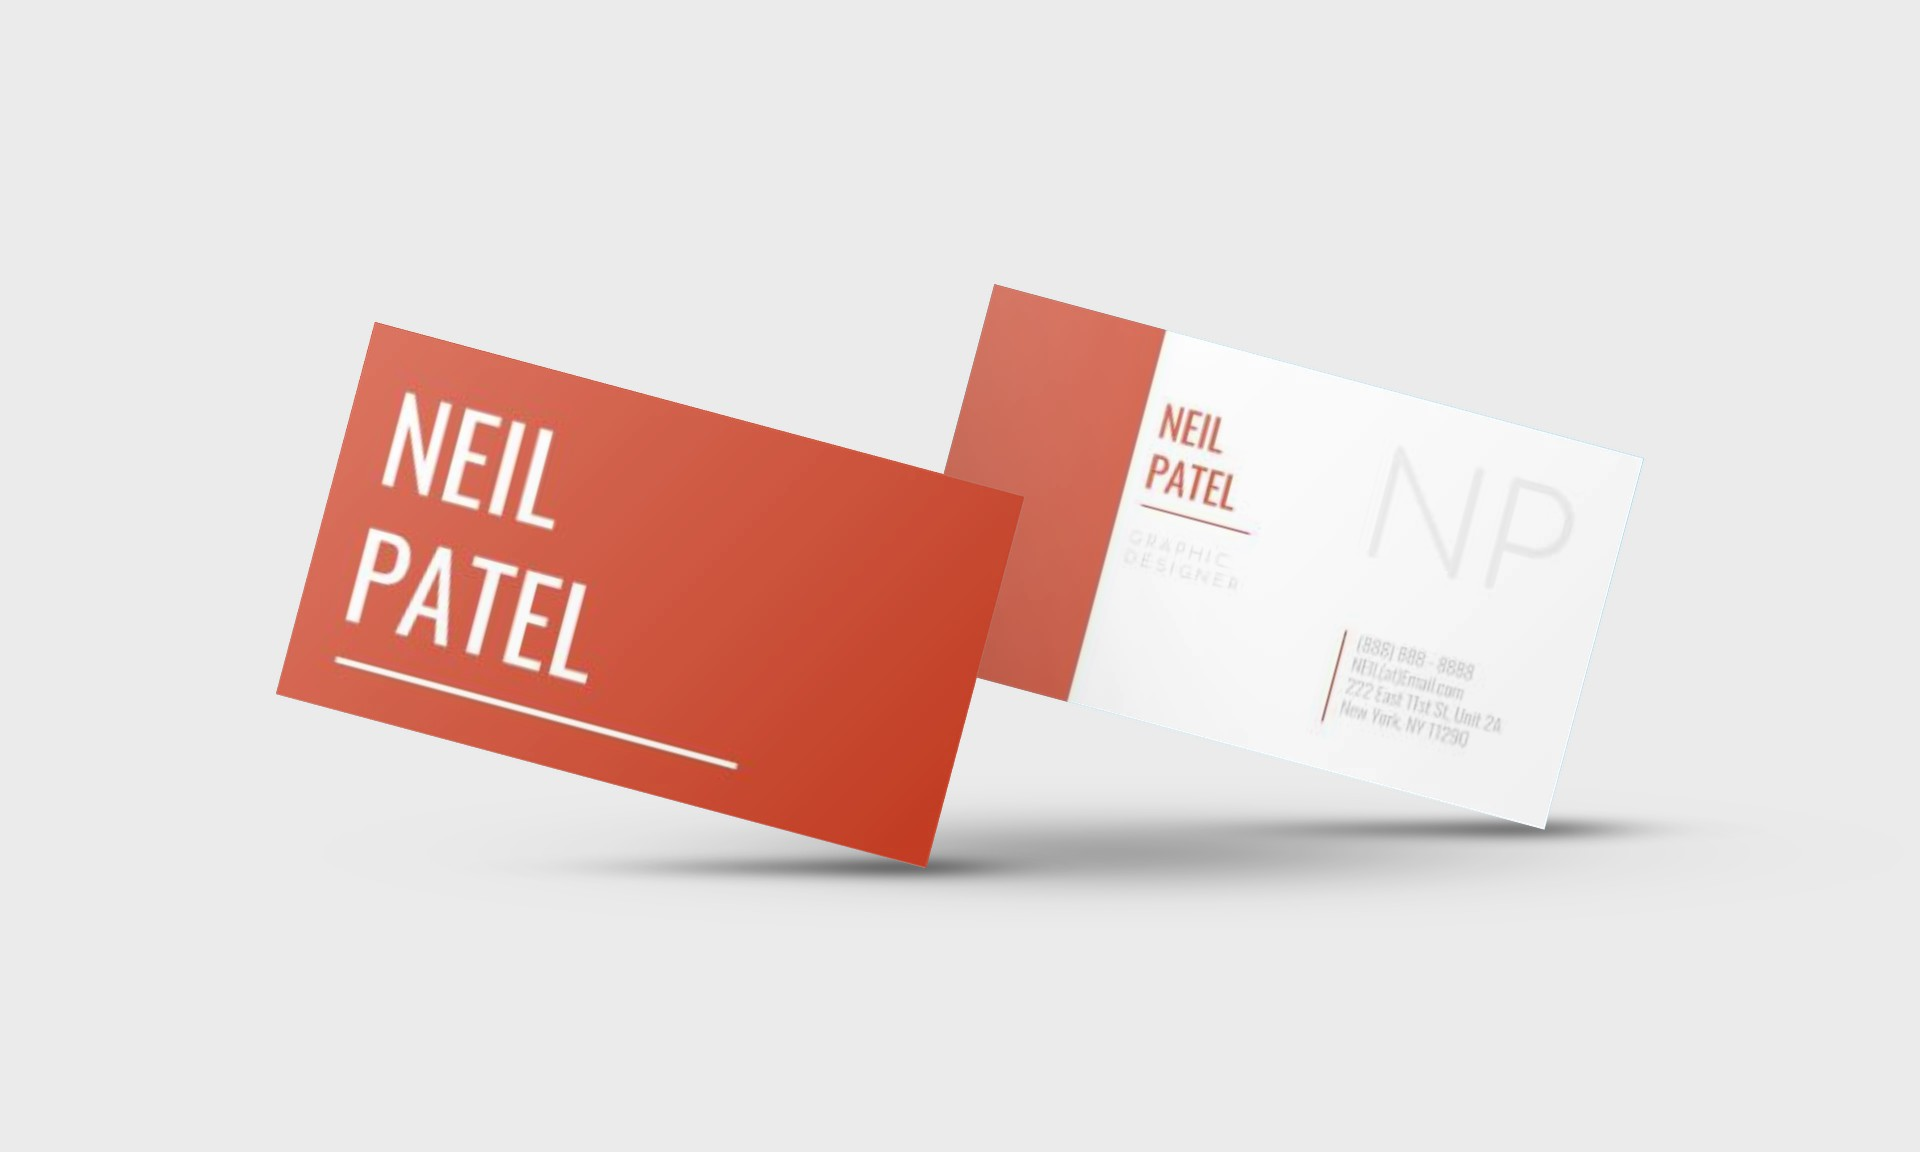 NEIL PATEL GOOGLE DOCS BUSINESS CARD TEMPLATE